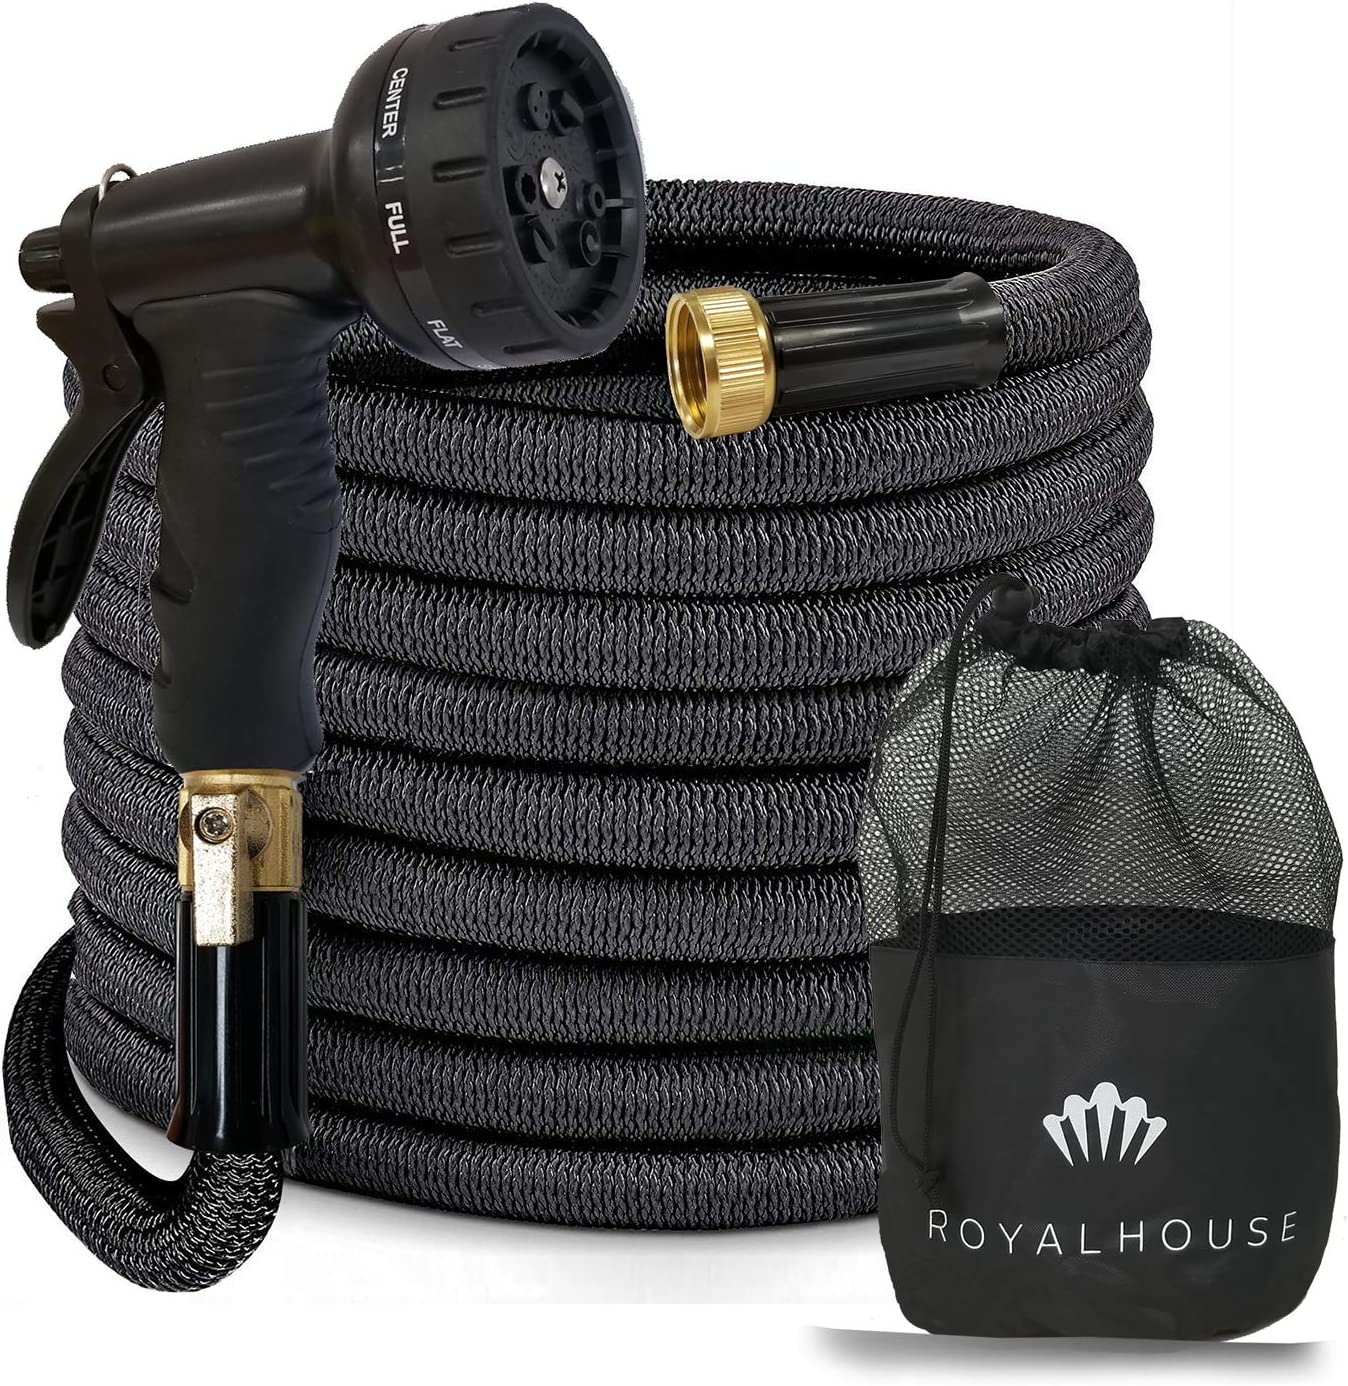 """RoyalHouse 100 FT Black Expandable Garden Hose Water Hose with 9-Function High-Pressure Spray Nozzle, Heavy Duty Flexible Hose - 3/4"""" Solid Brass Fittings Leak Proof Design"""